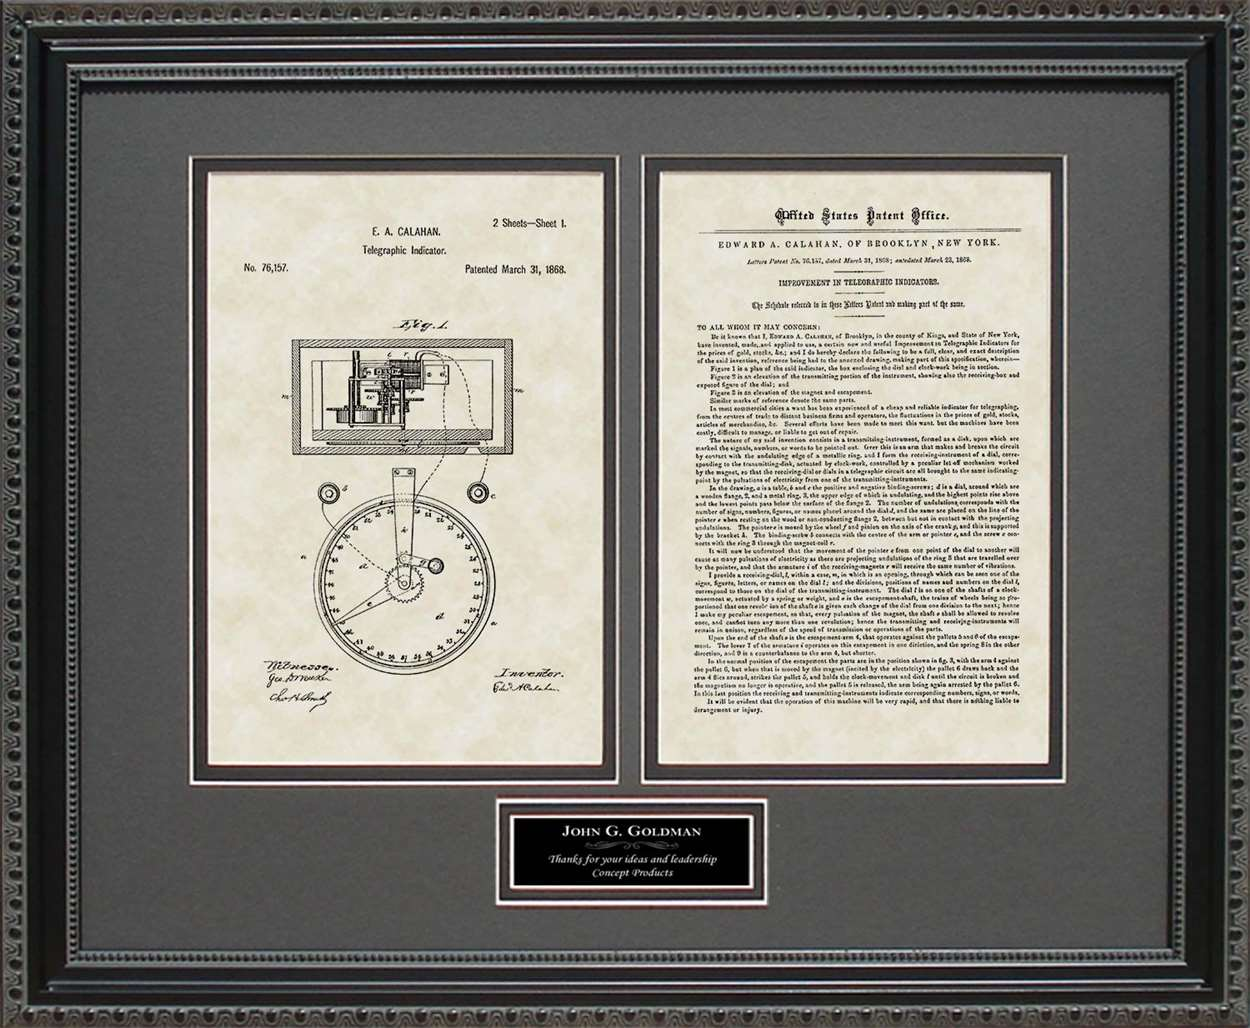 Personalized Stock Ticker Patent, Art & Copy, Calahan, 1868